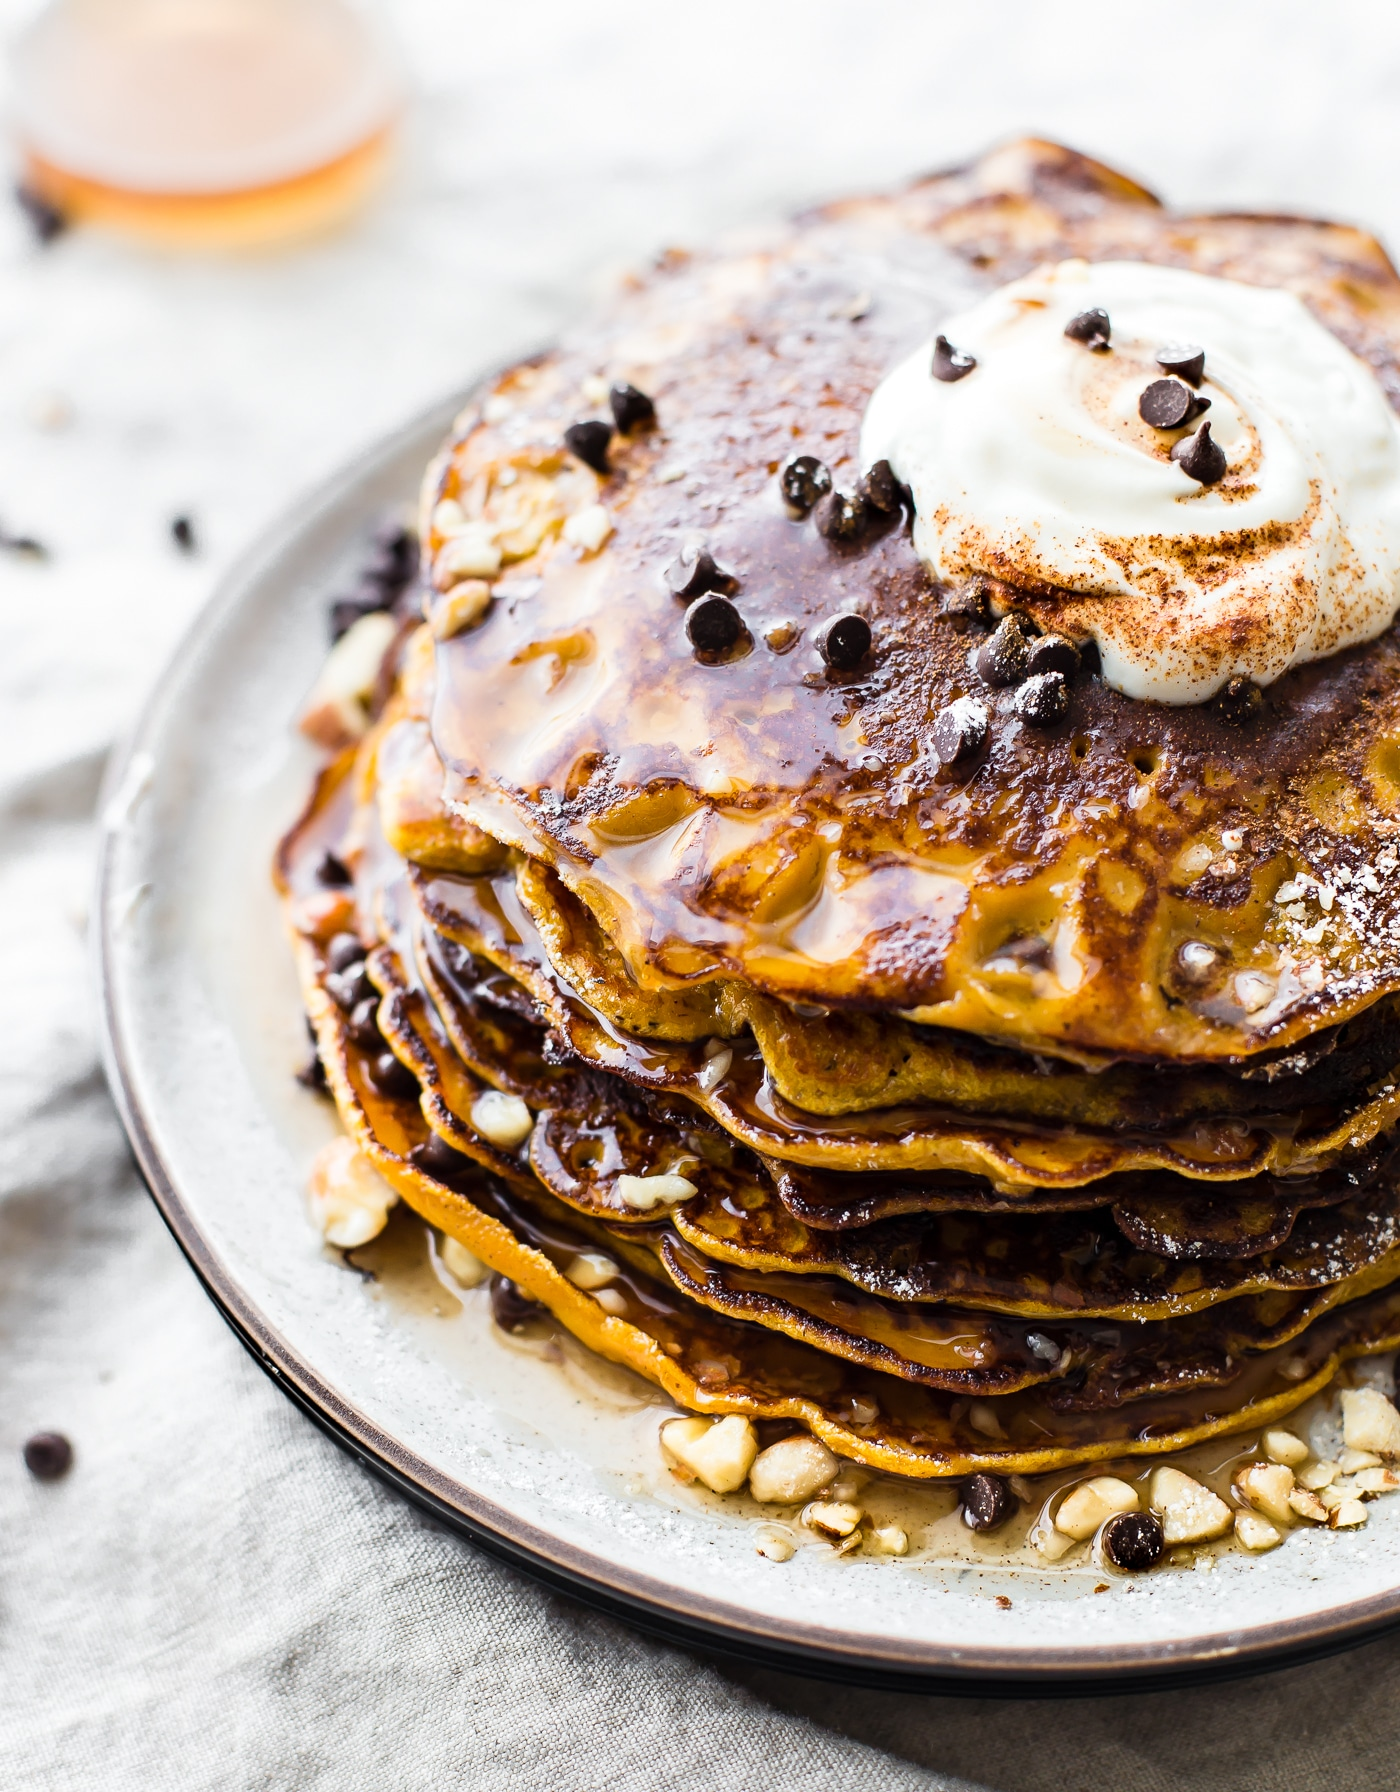 """A Flourless Carrot Cake Yogurt Pancakes recipe that's perfect for breakfast or brunch. These Flourless Carrot """"Cake"""" Yogurt Pancakes are too good to be true! Made with siggi's vanilla yogurt, making them lower in sugar, gluten free, and protein packed! An easy blender recipe."""